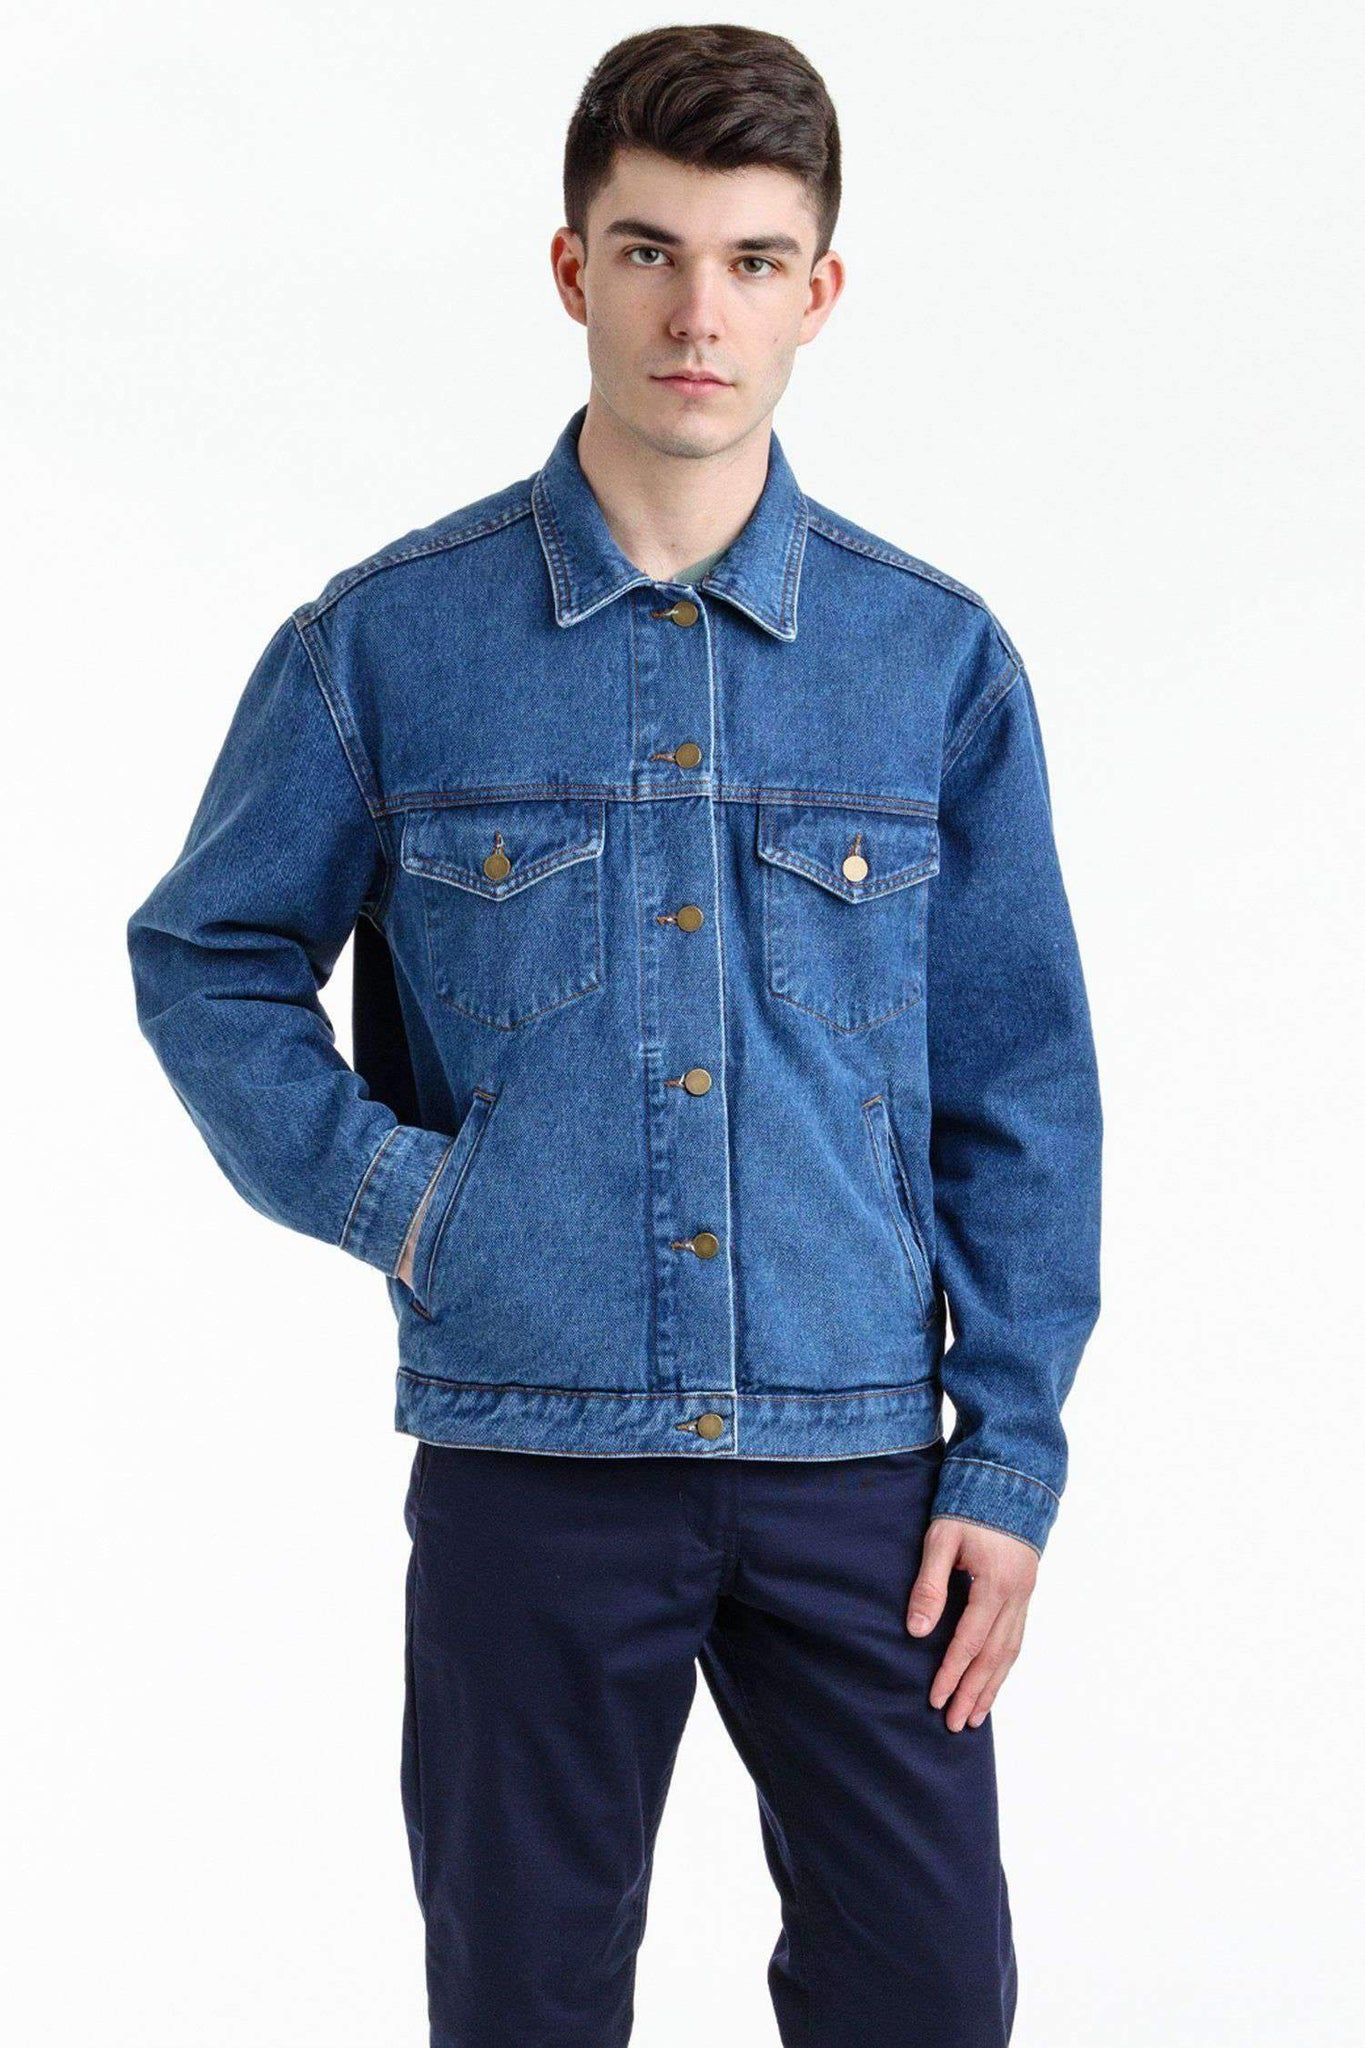 RDNM04 - Denim Jacket Jacket Los Angeles Apparel